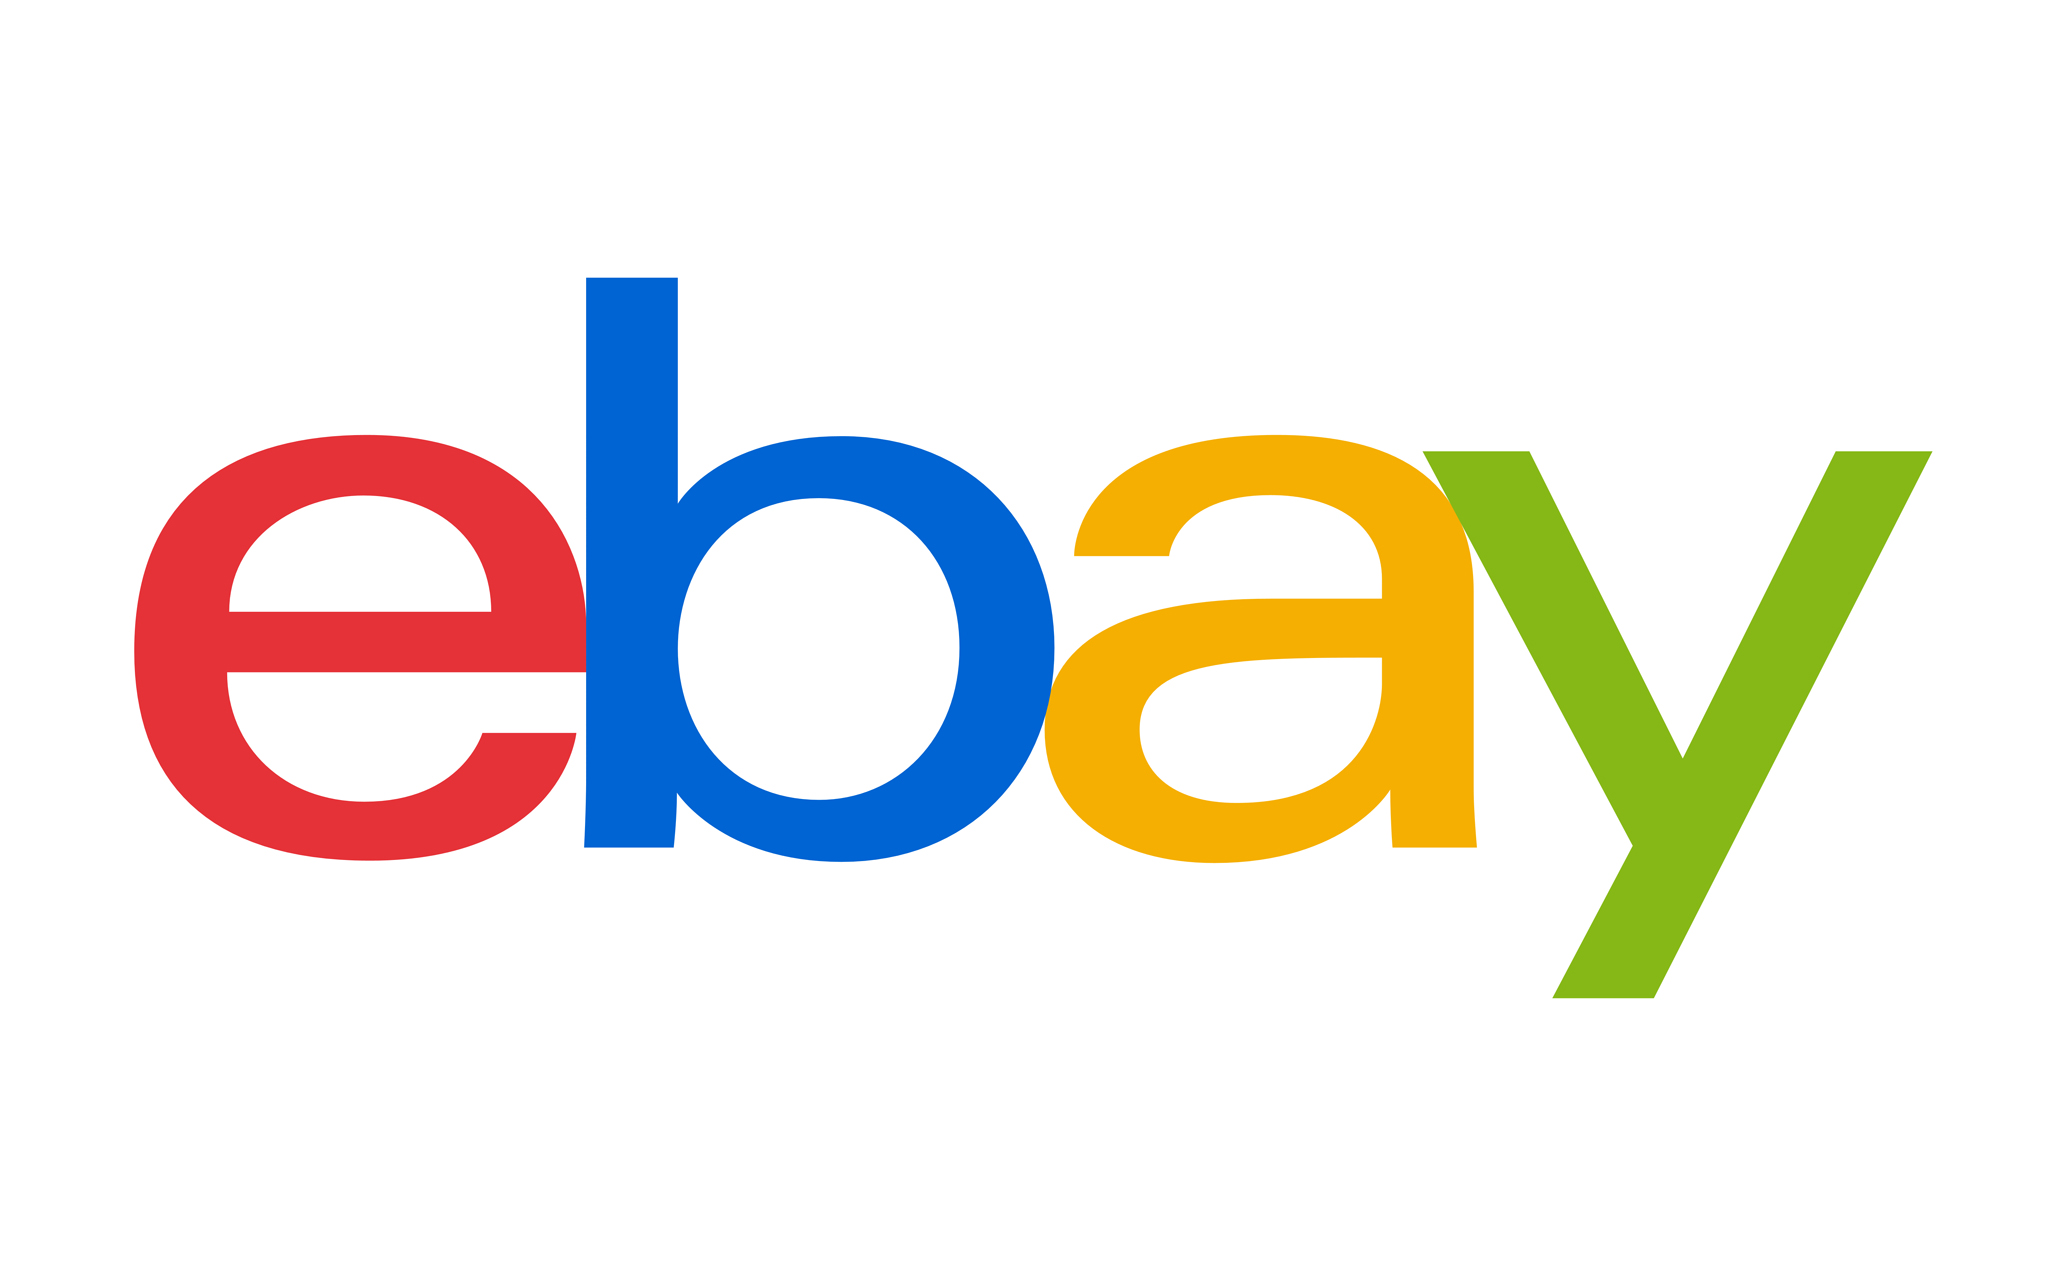 Ebay's first quarter financials came out mixed.